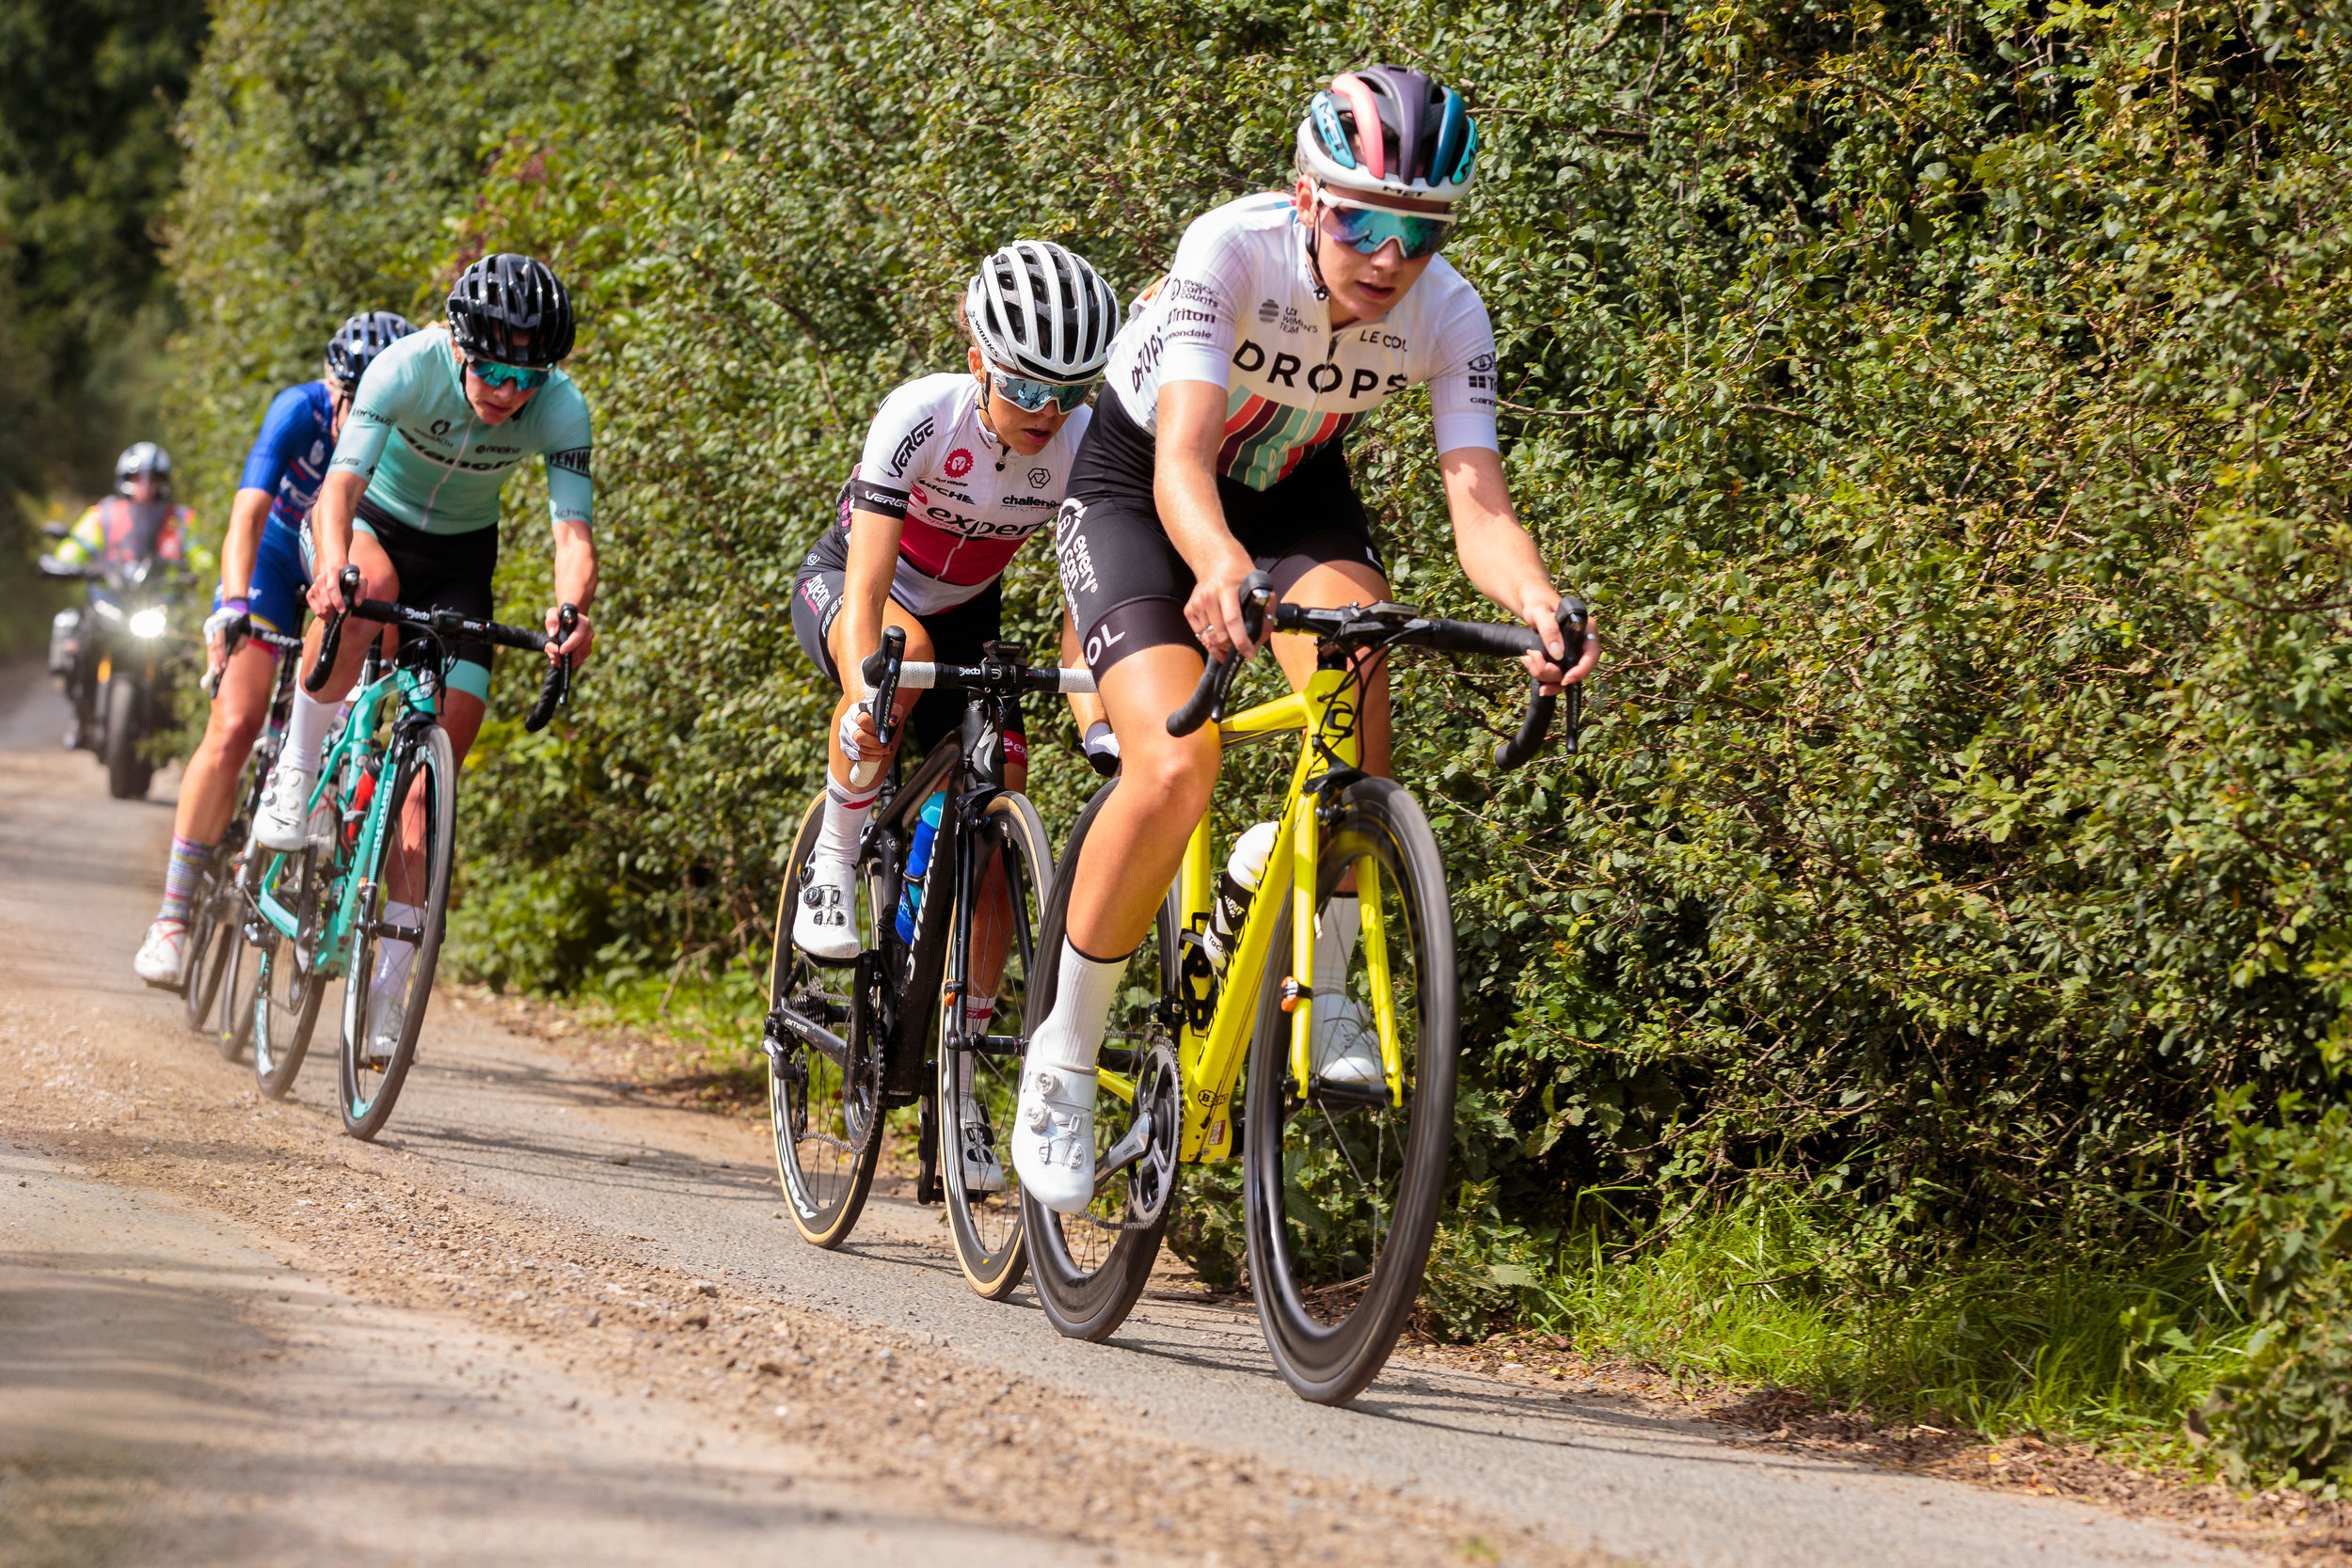 Anna Christian Cycling for Drops at The Ryedale Grand Prix